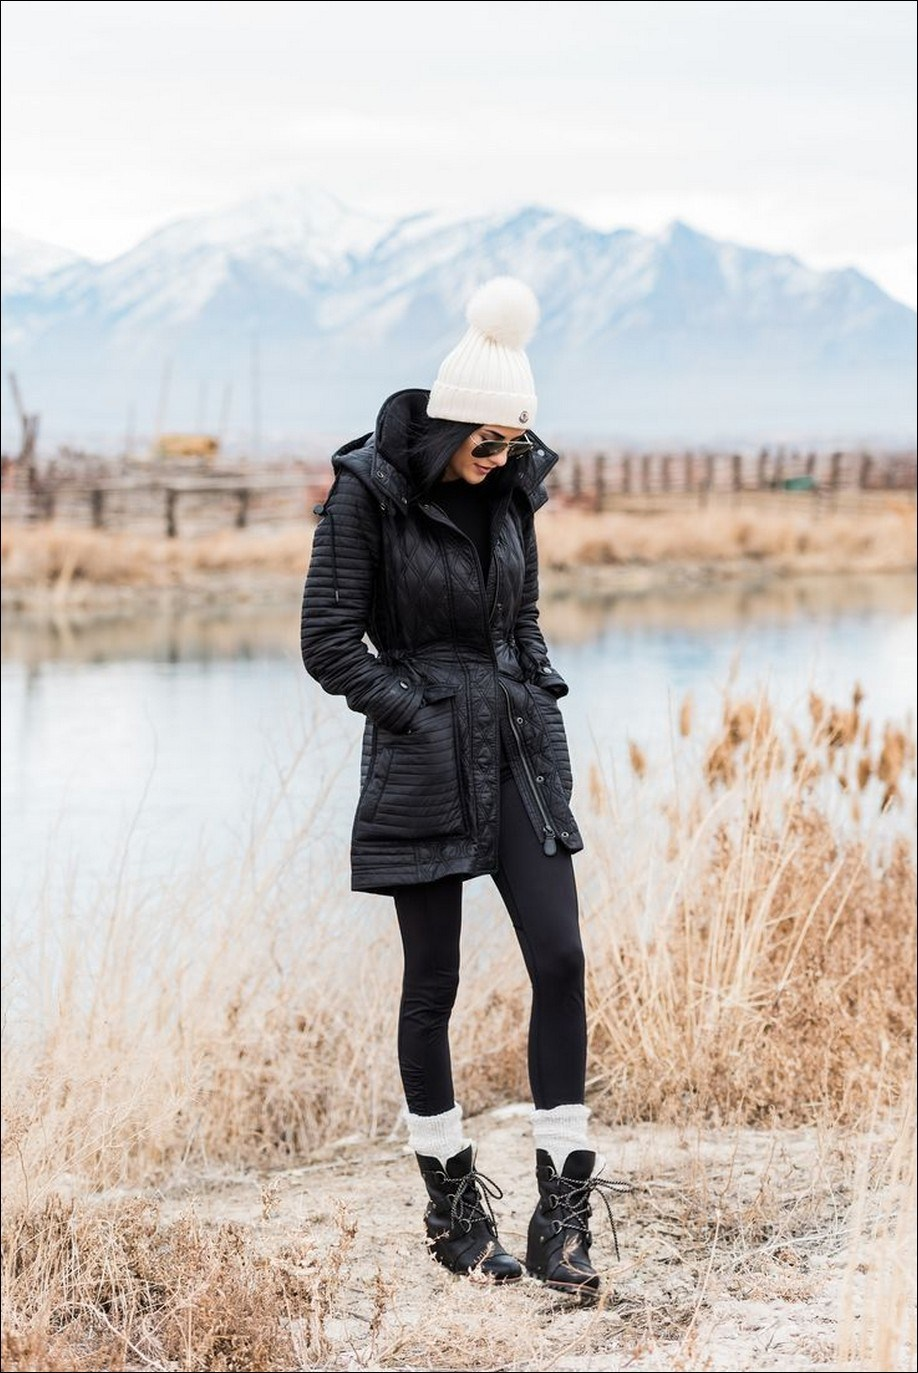 55+ lovely winter dress ideas for teens ideas 21